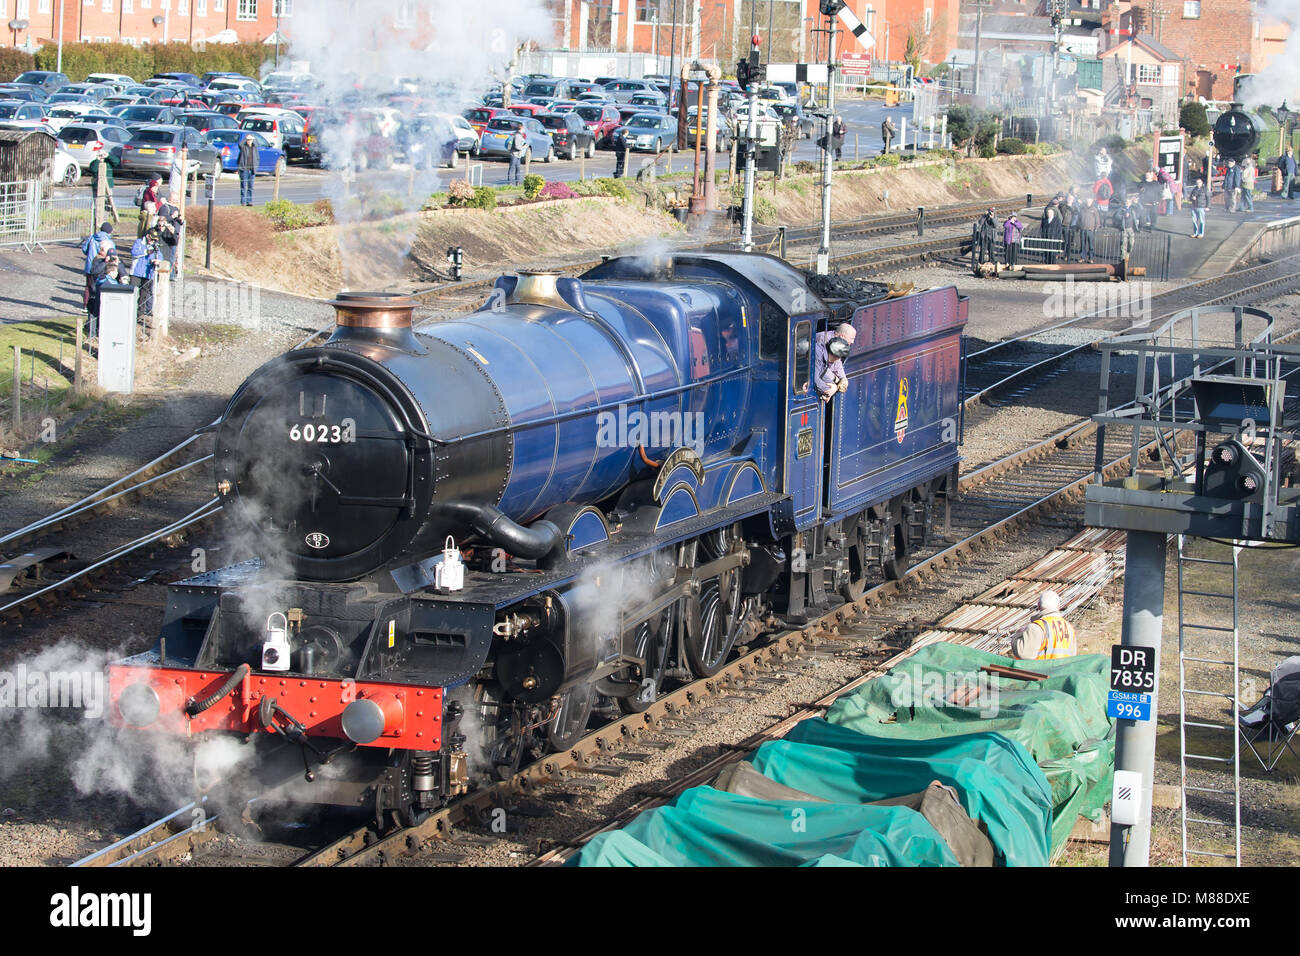 Kidderminster, UK. 16th March, 2018. Severn Valley Rail enthusiasts enjoy taking pictures and travelling on the - Stock Image